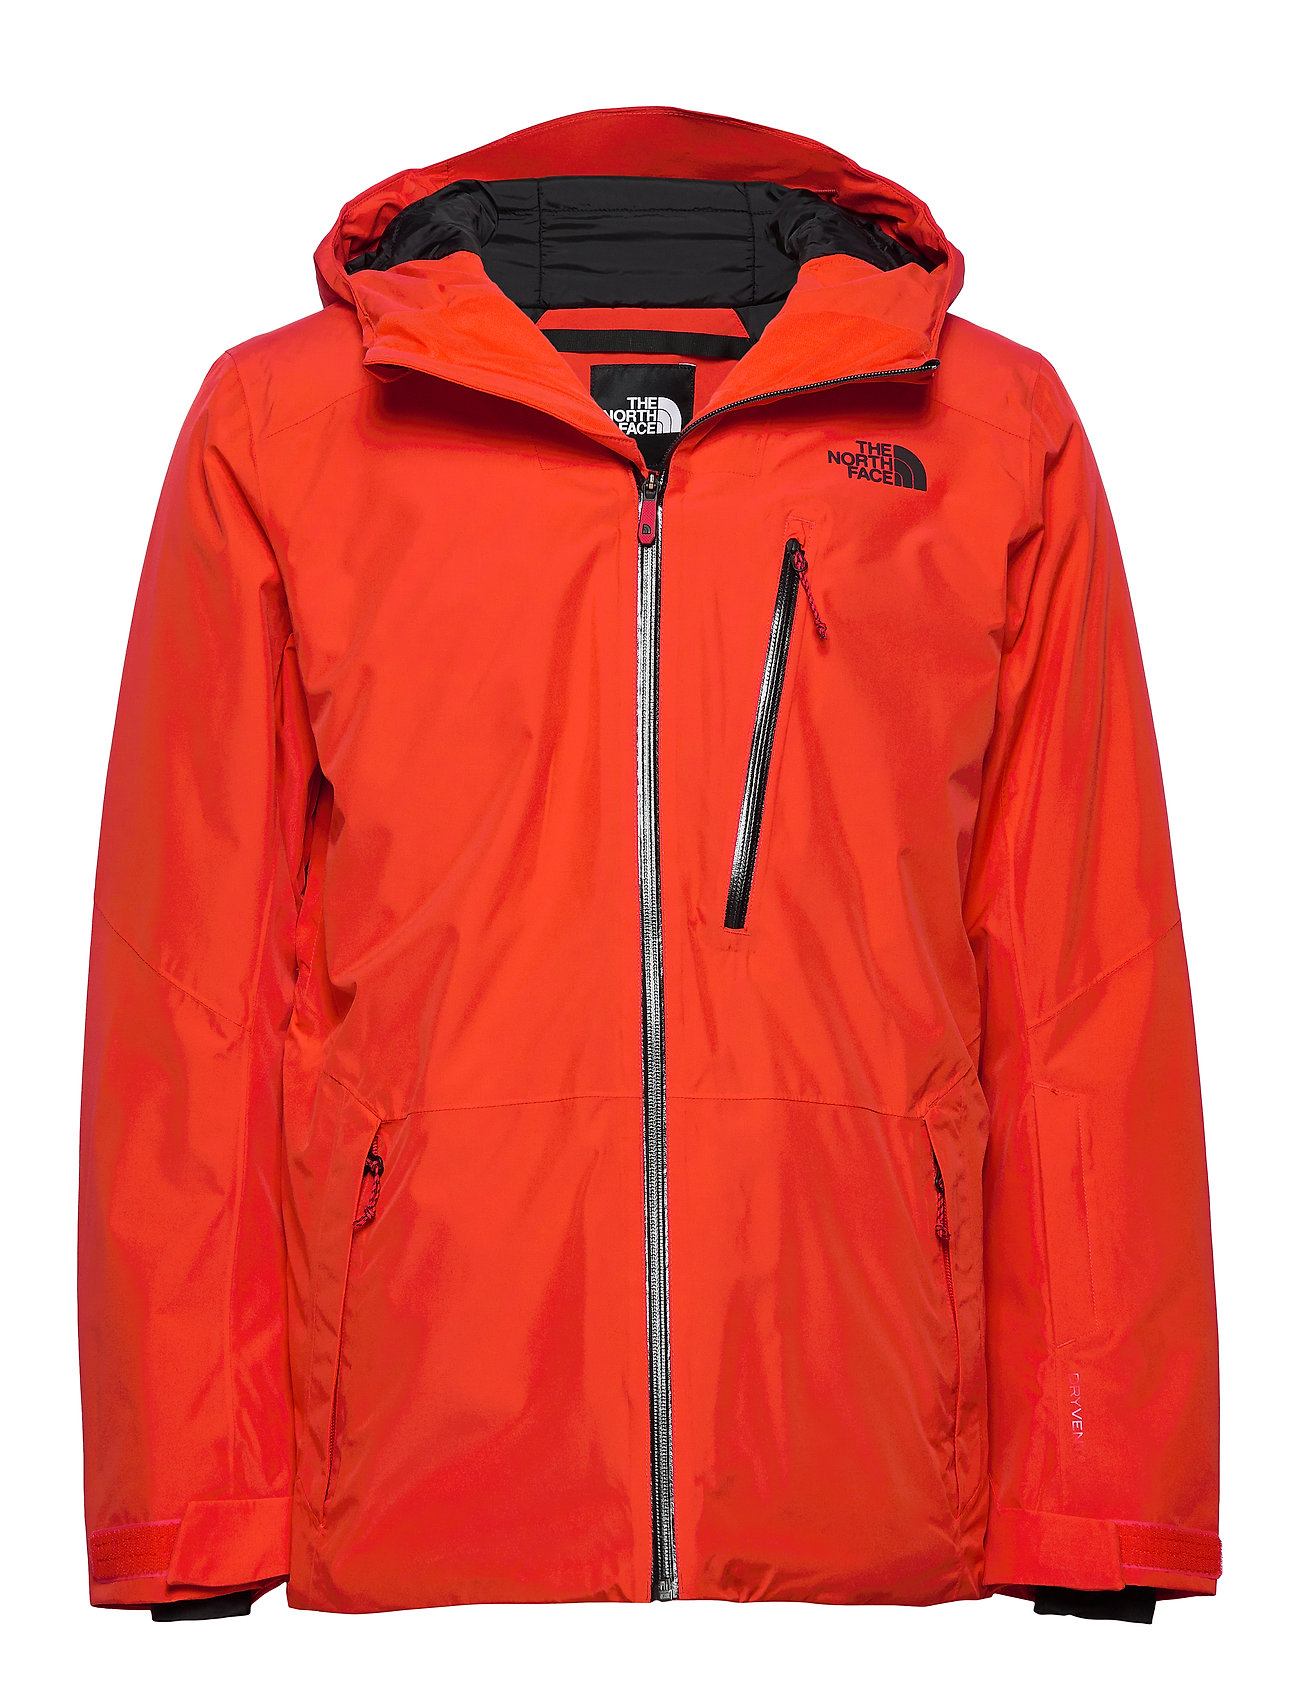 The North Face M DESCENDIT JKT - FIERY RED